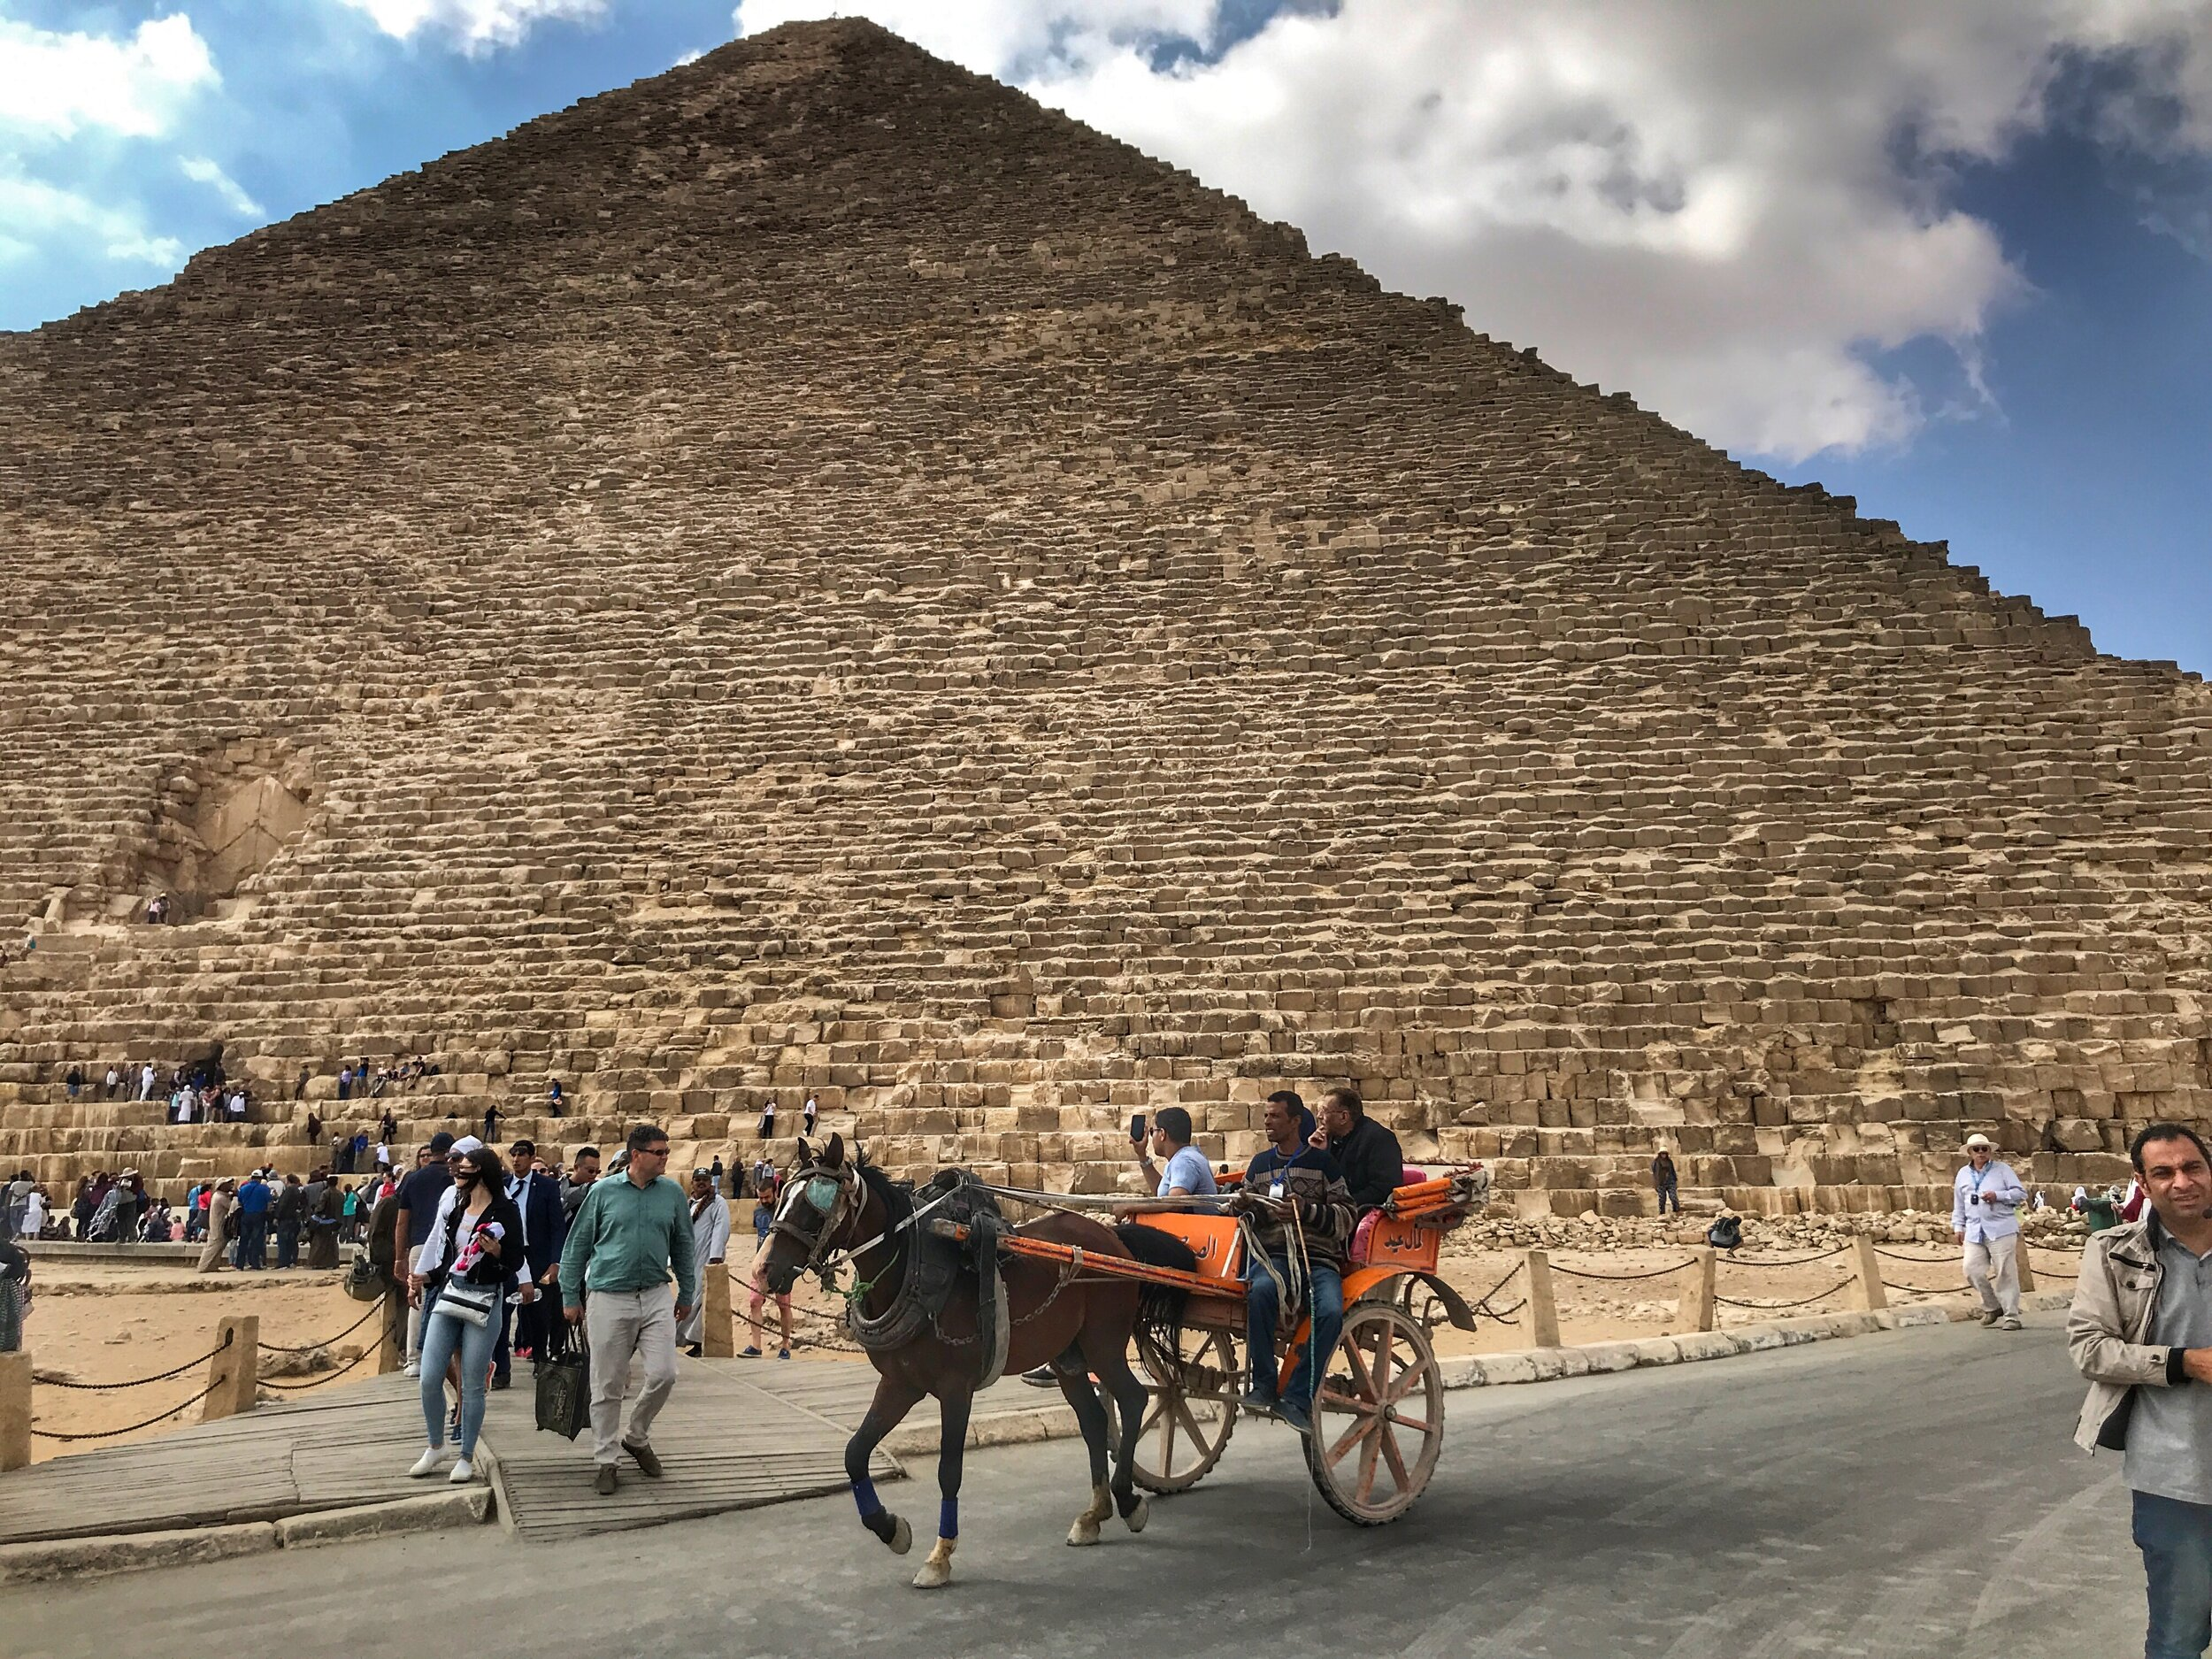 Horse-drawn carriages are another way to get around Giza